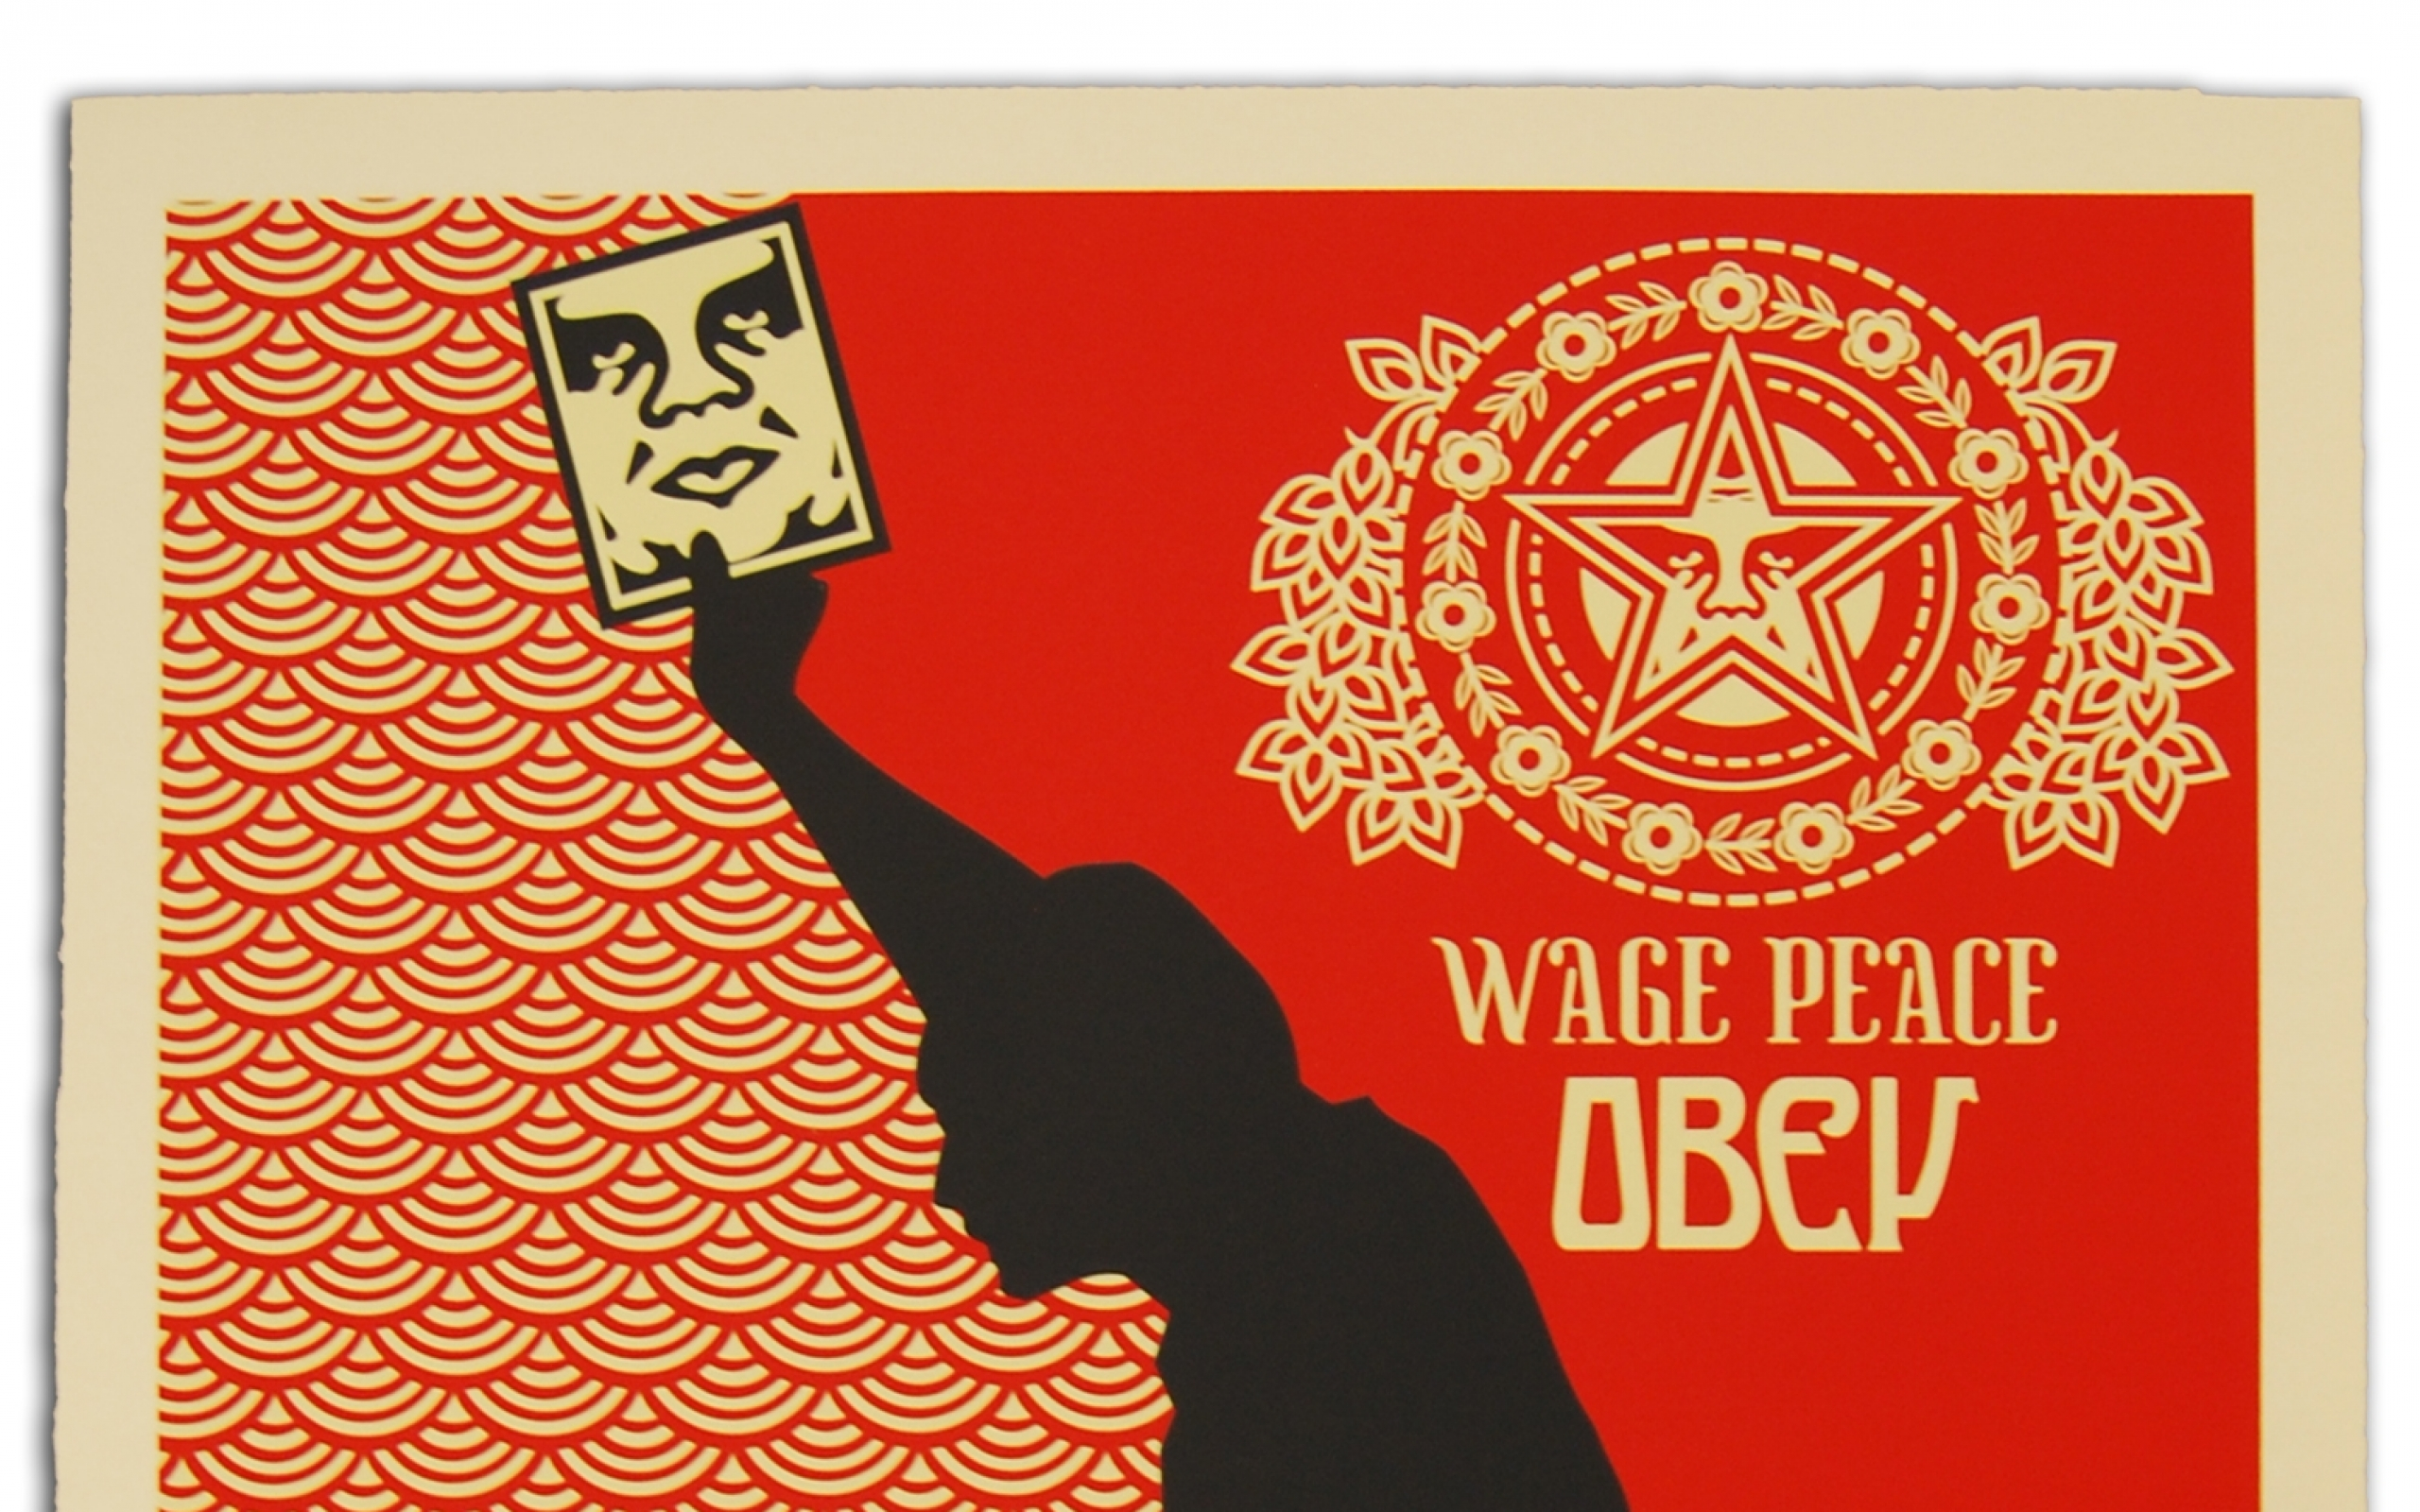 obey ak47 shepard fairey 1556x2263 wallpaper Art HD Wallpaper download 2560x1600